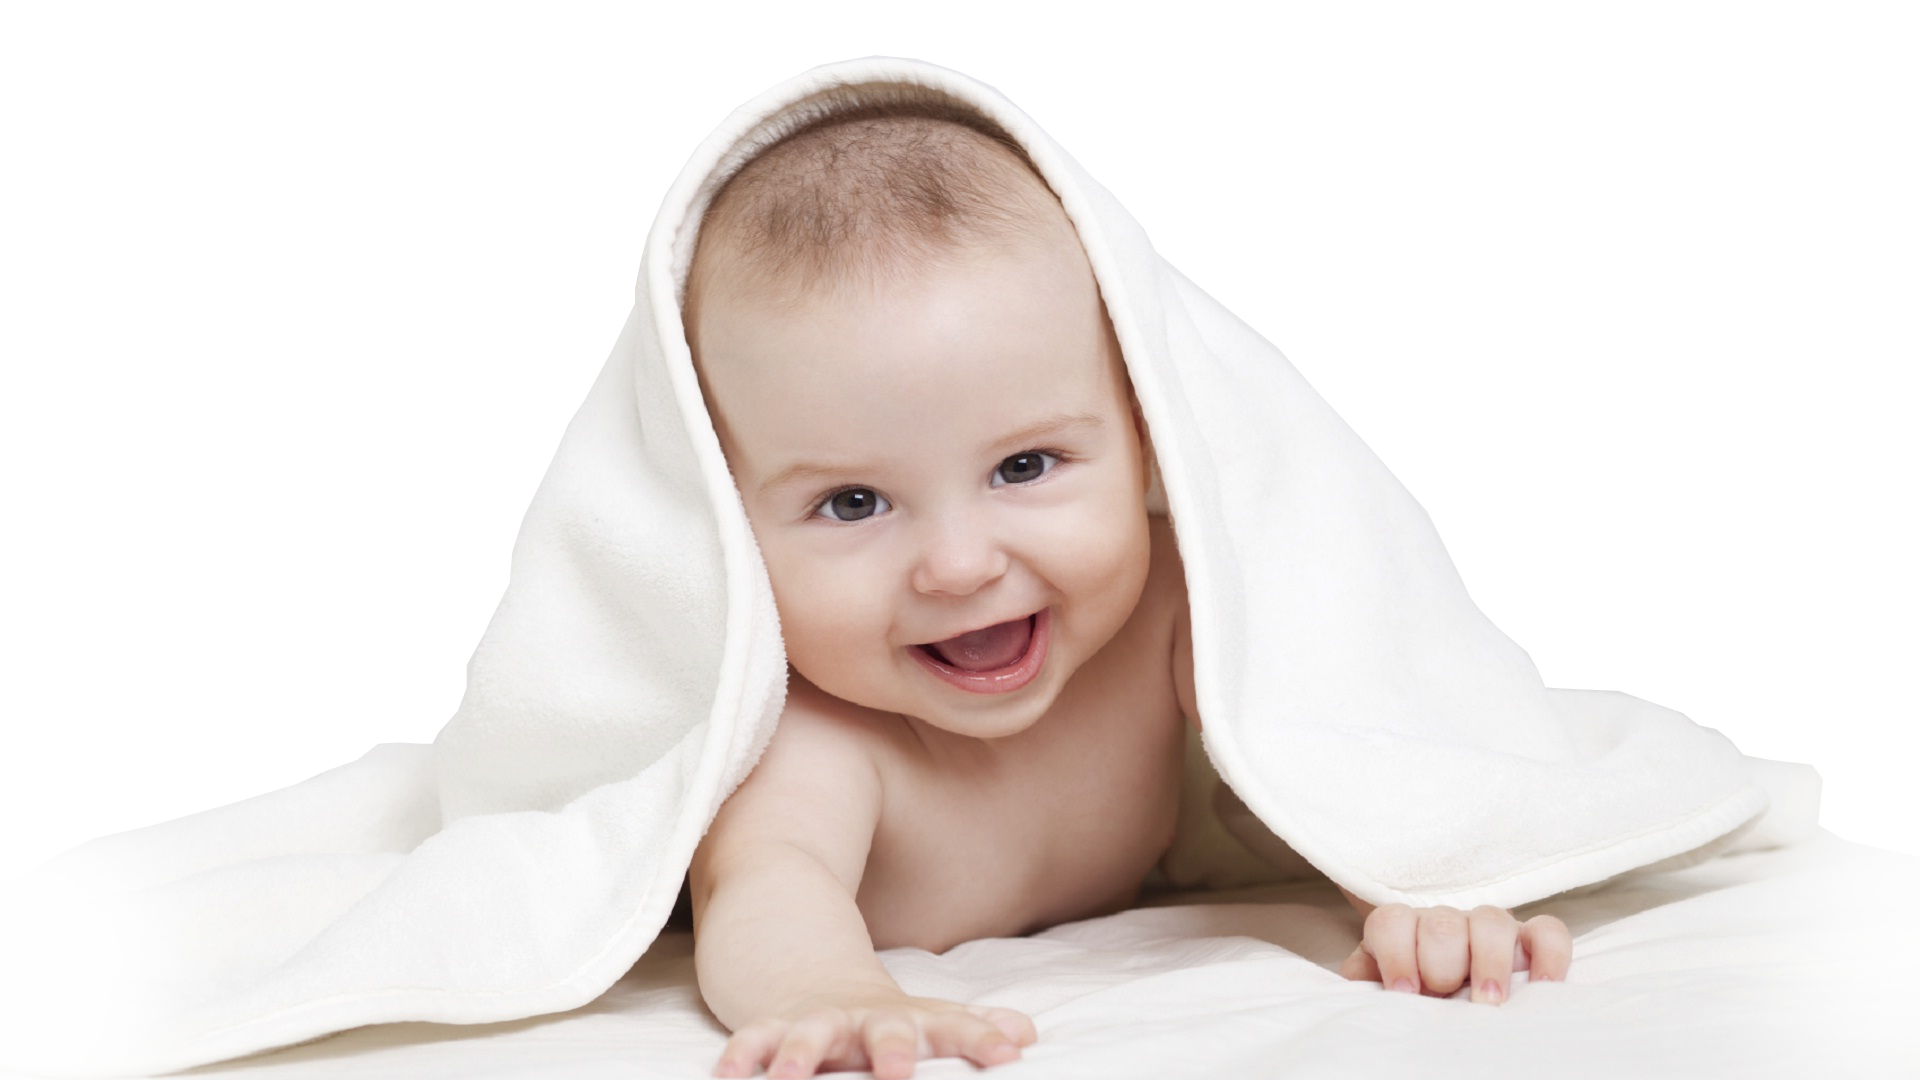 children laughing png